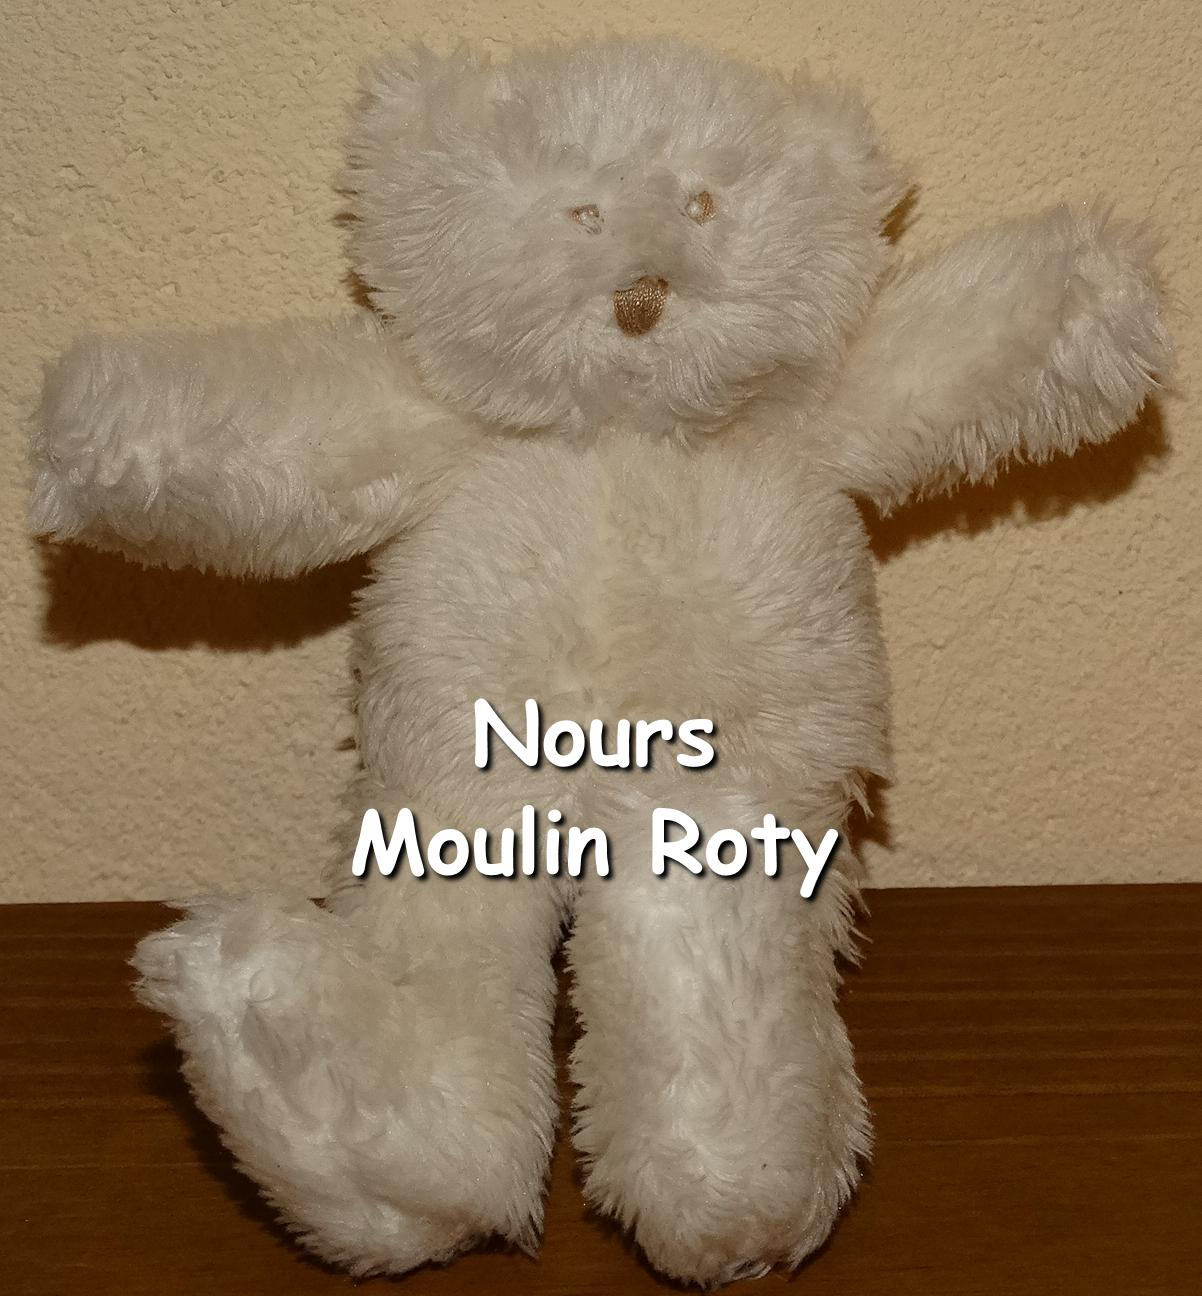 35 - ours moulin roty.jpg